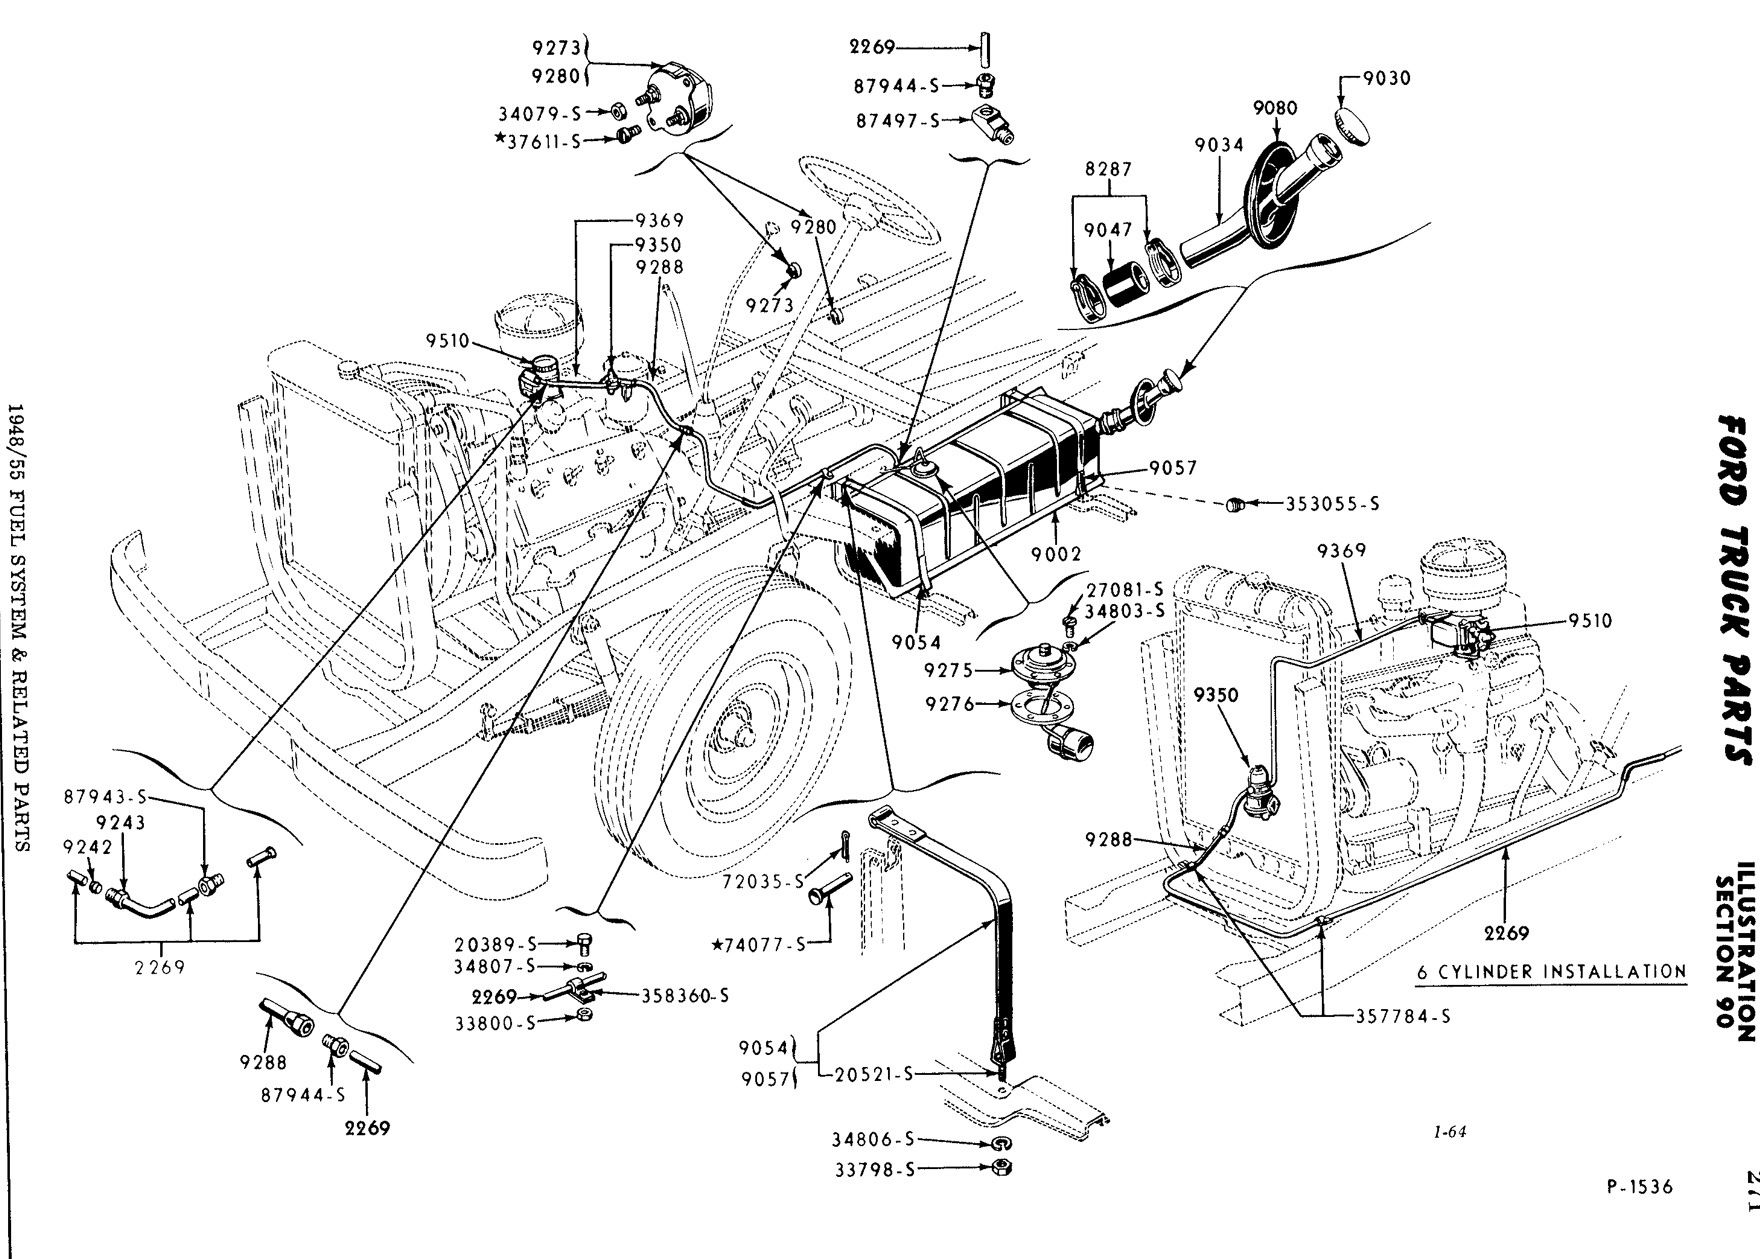 Corvette Wiring Diagram Corvette Wiring Diagram Images